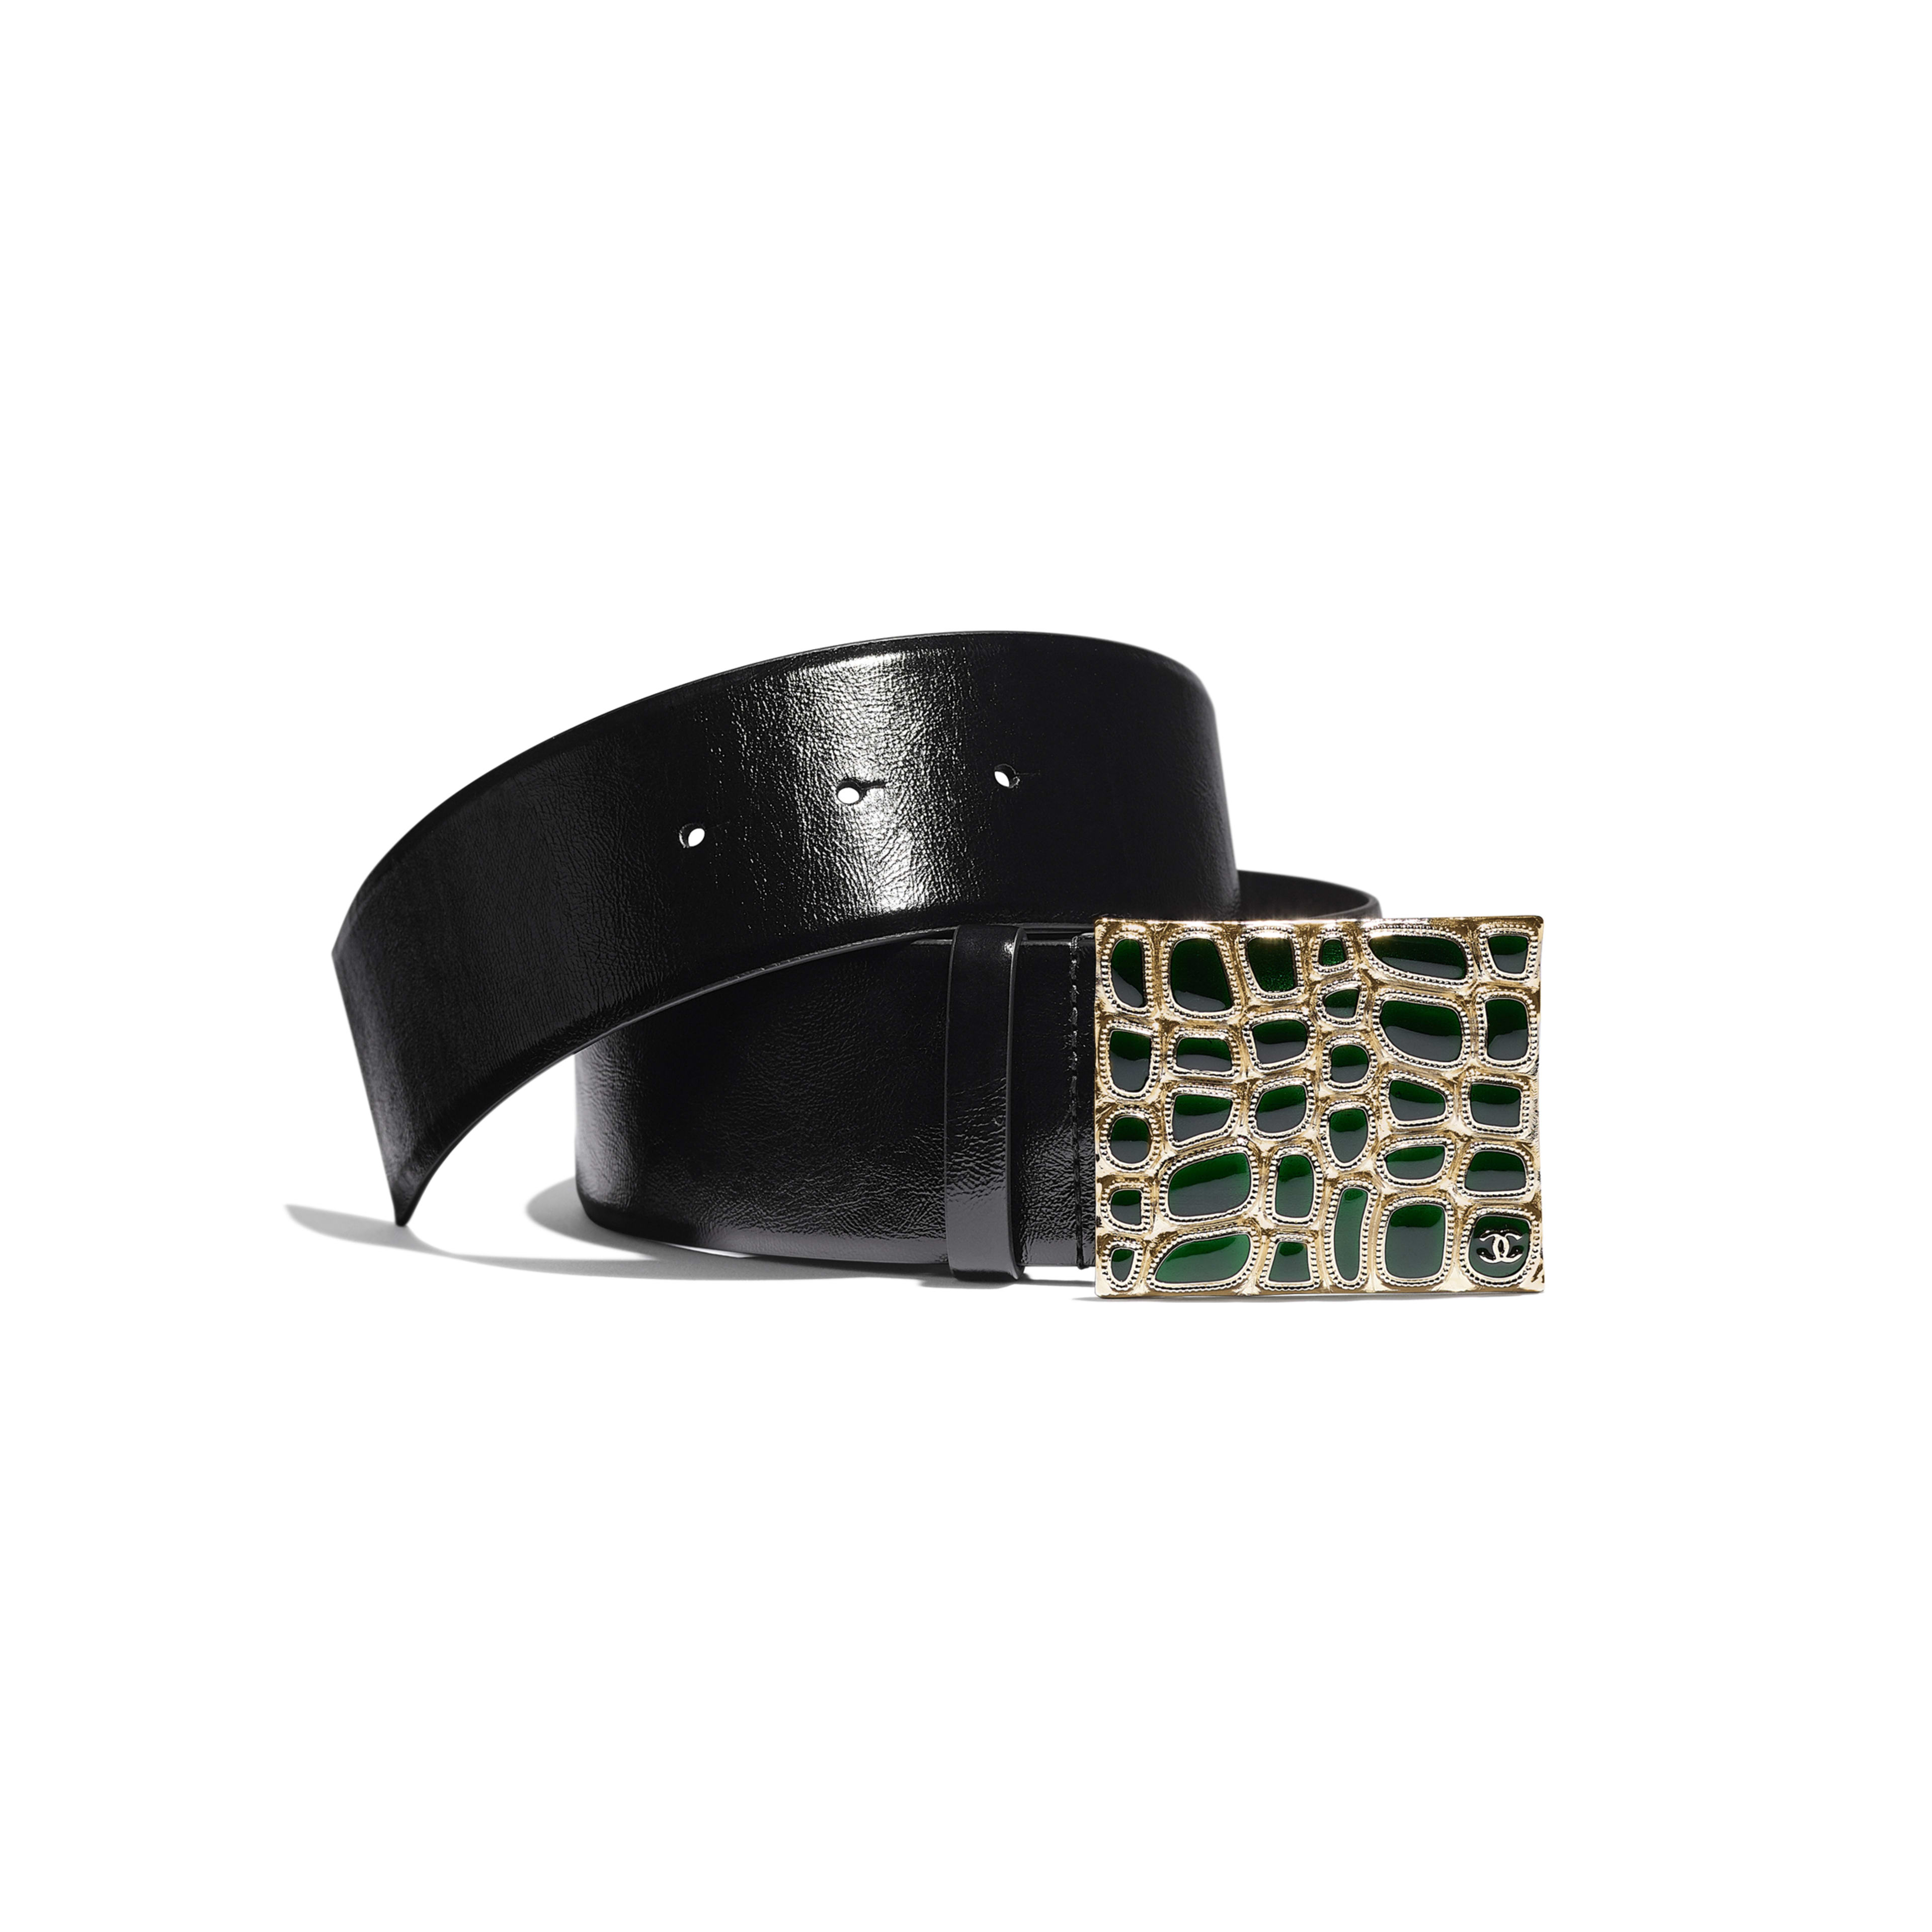 Belt - Black & Green - Calfskin, Gold-Tone Metal & Resin - Default view - see full sized version